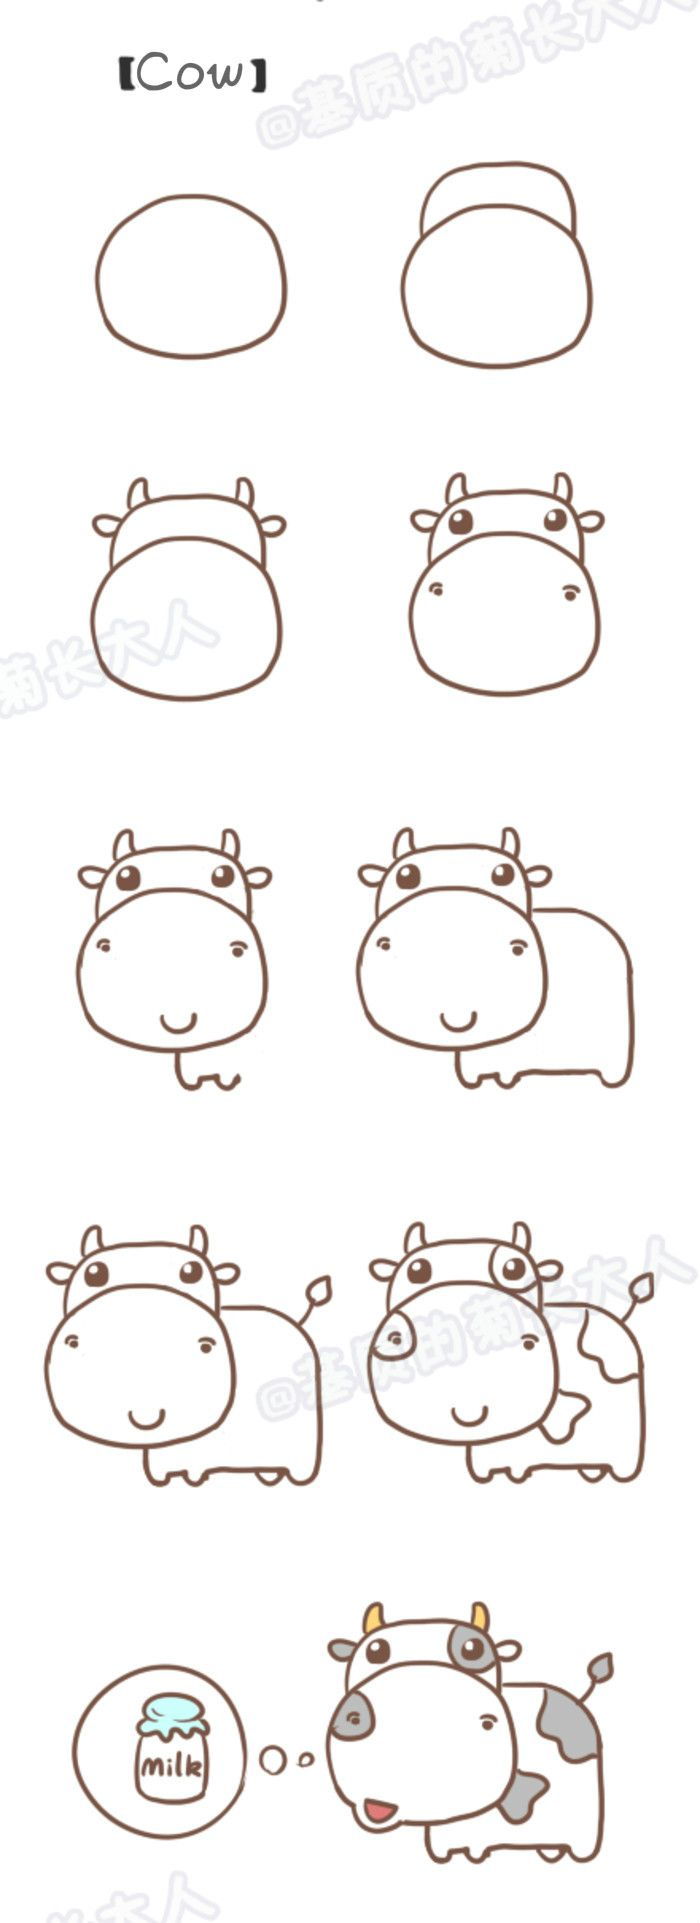 Step by step drawing learn to draw a cow dessins for Thing to draw